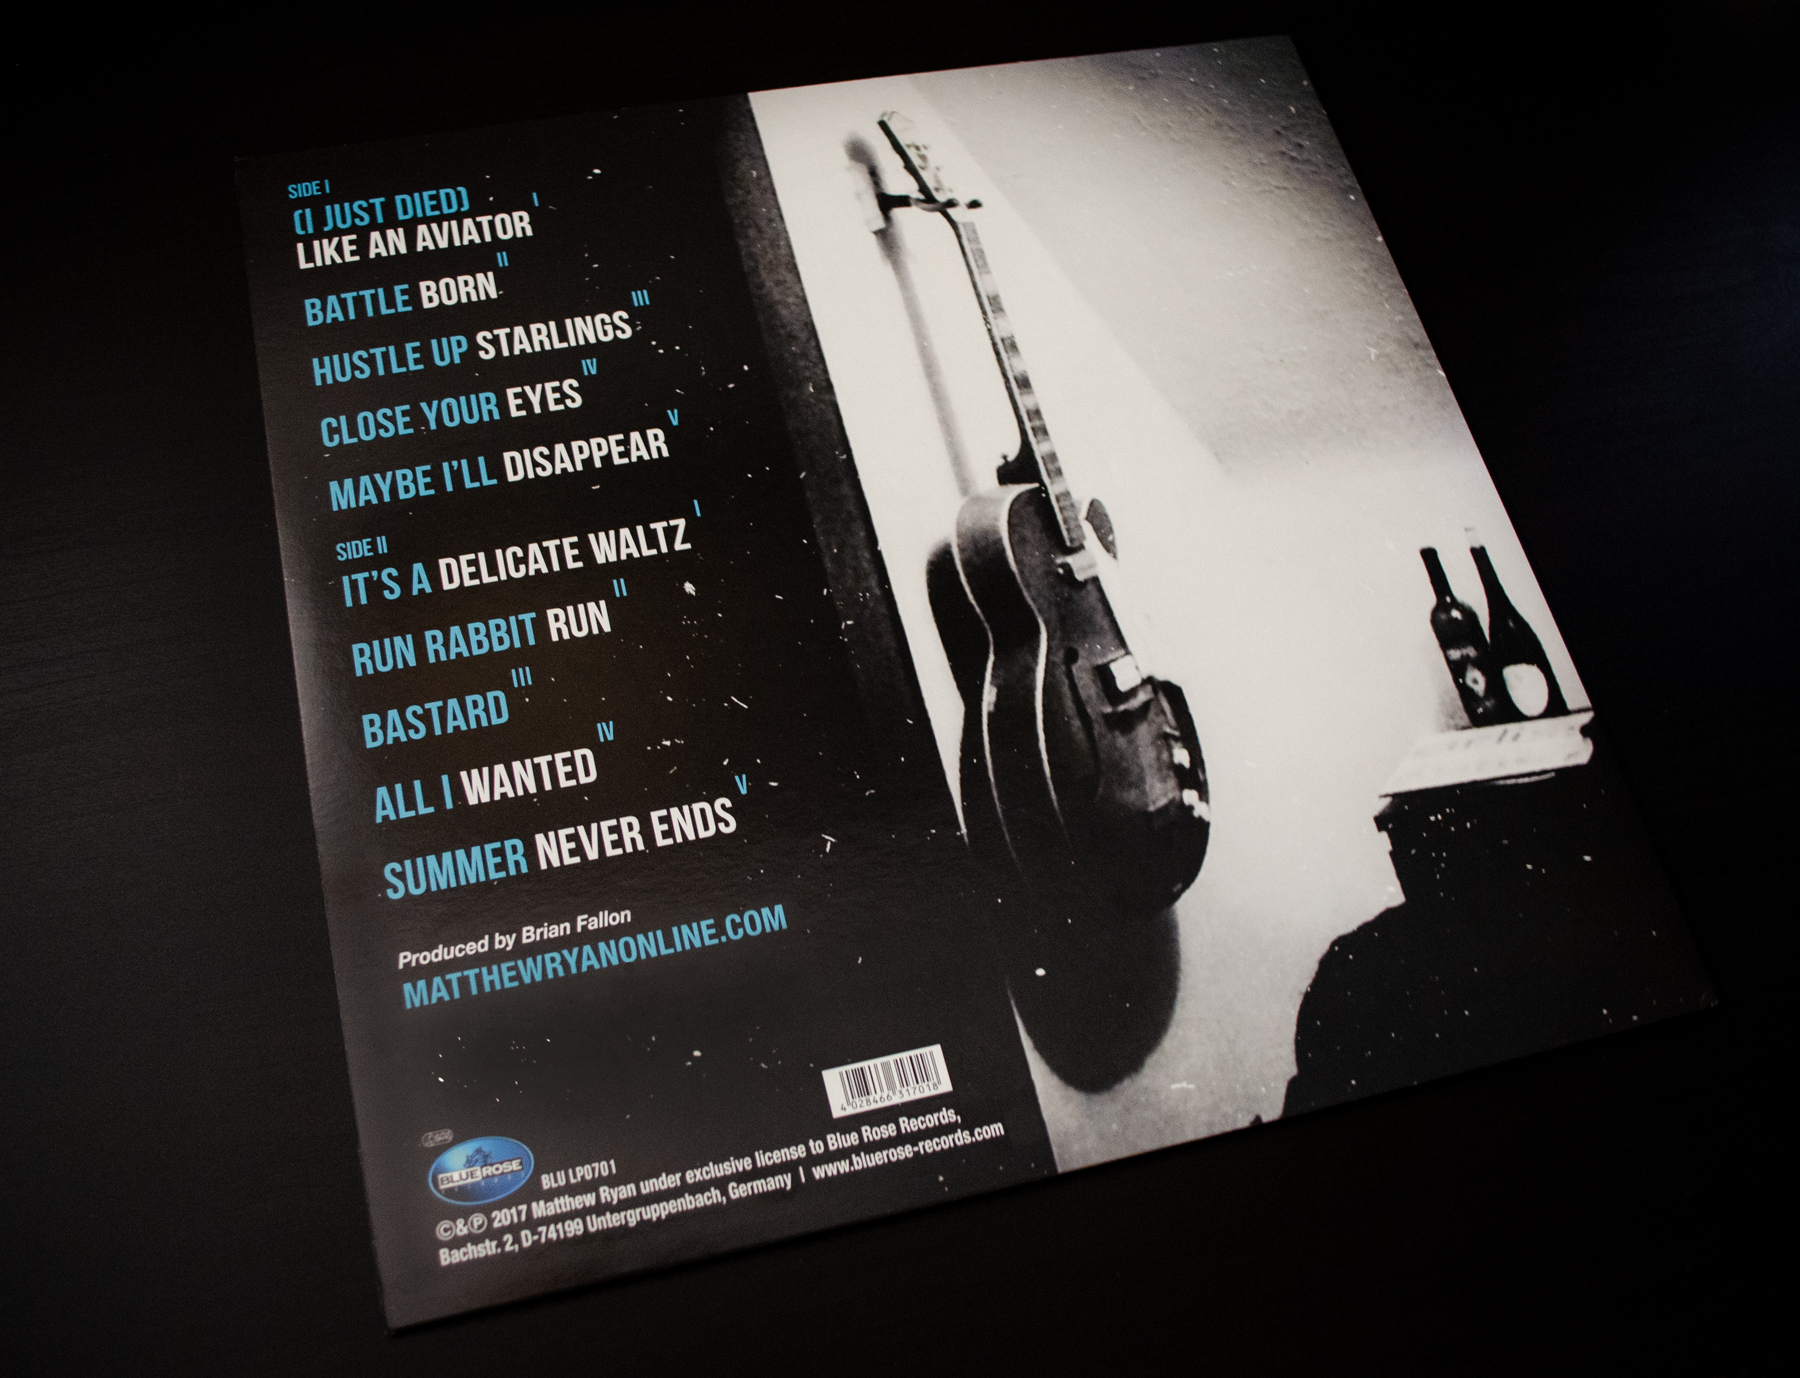 Matthew Ryan Hustle Up Starlings Back Cover Vinyl